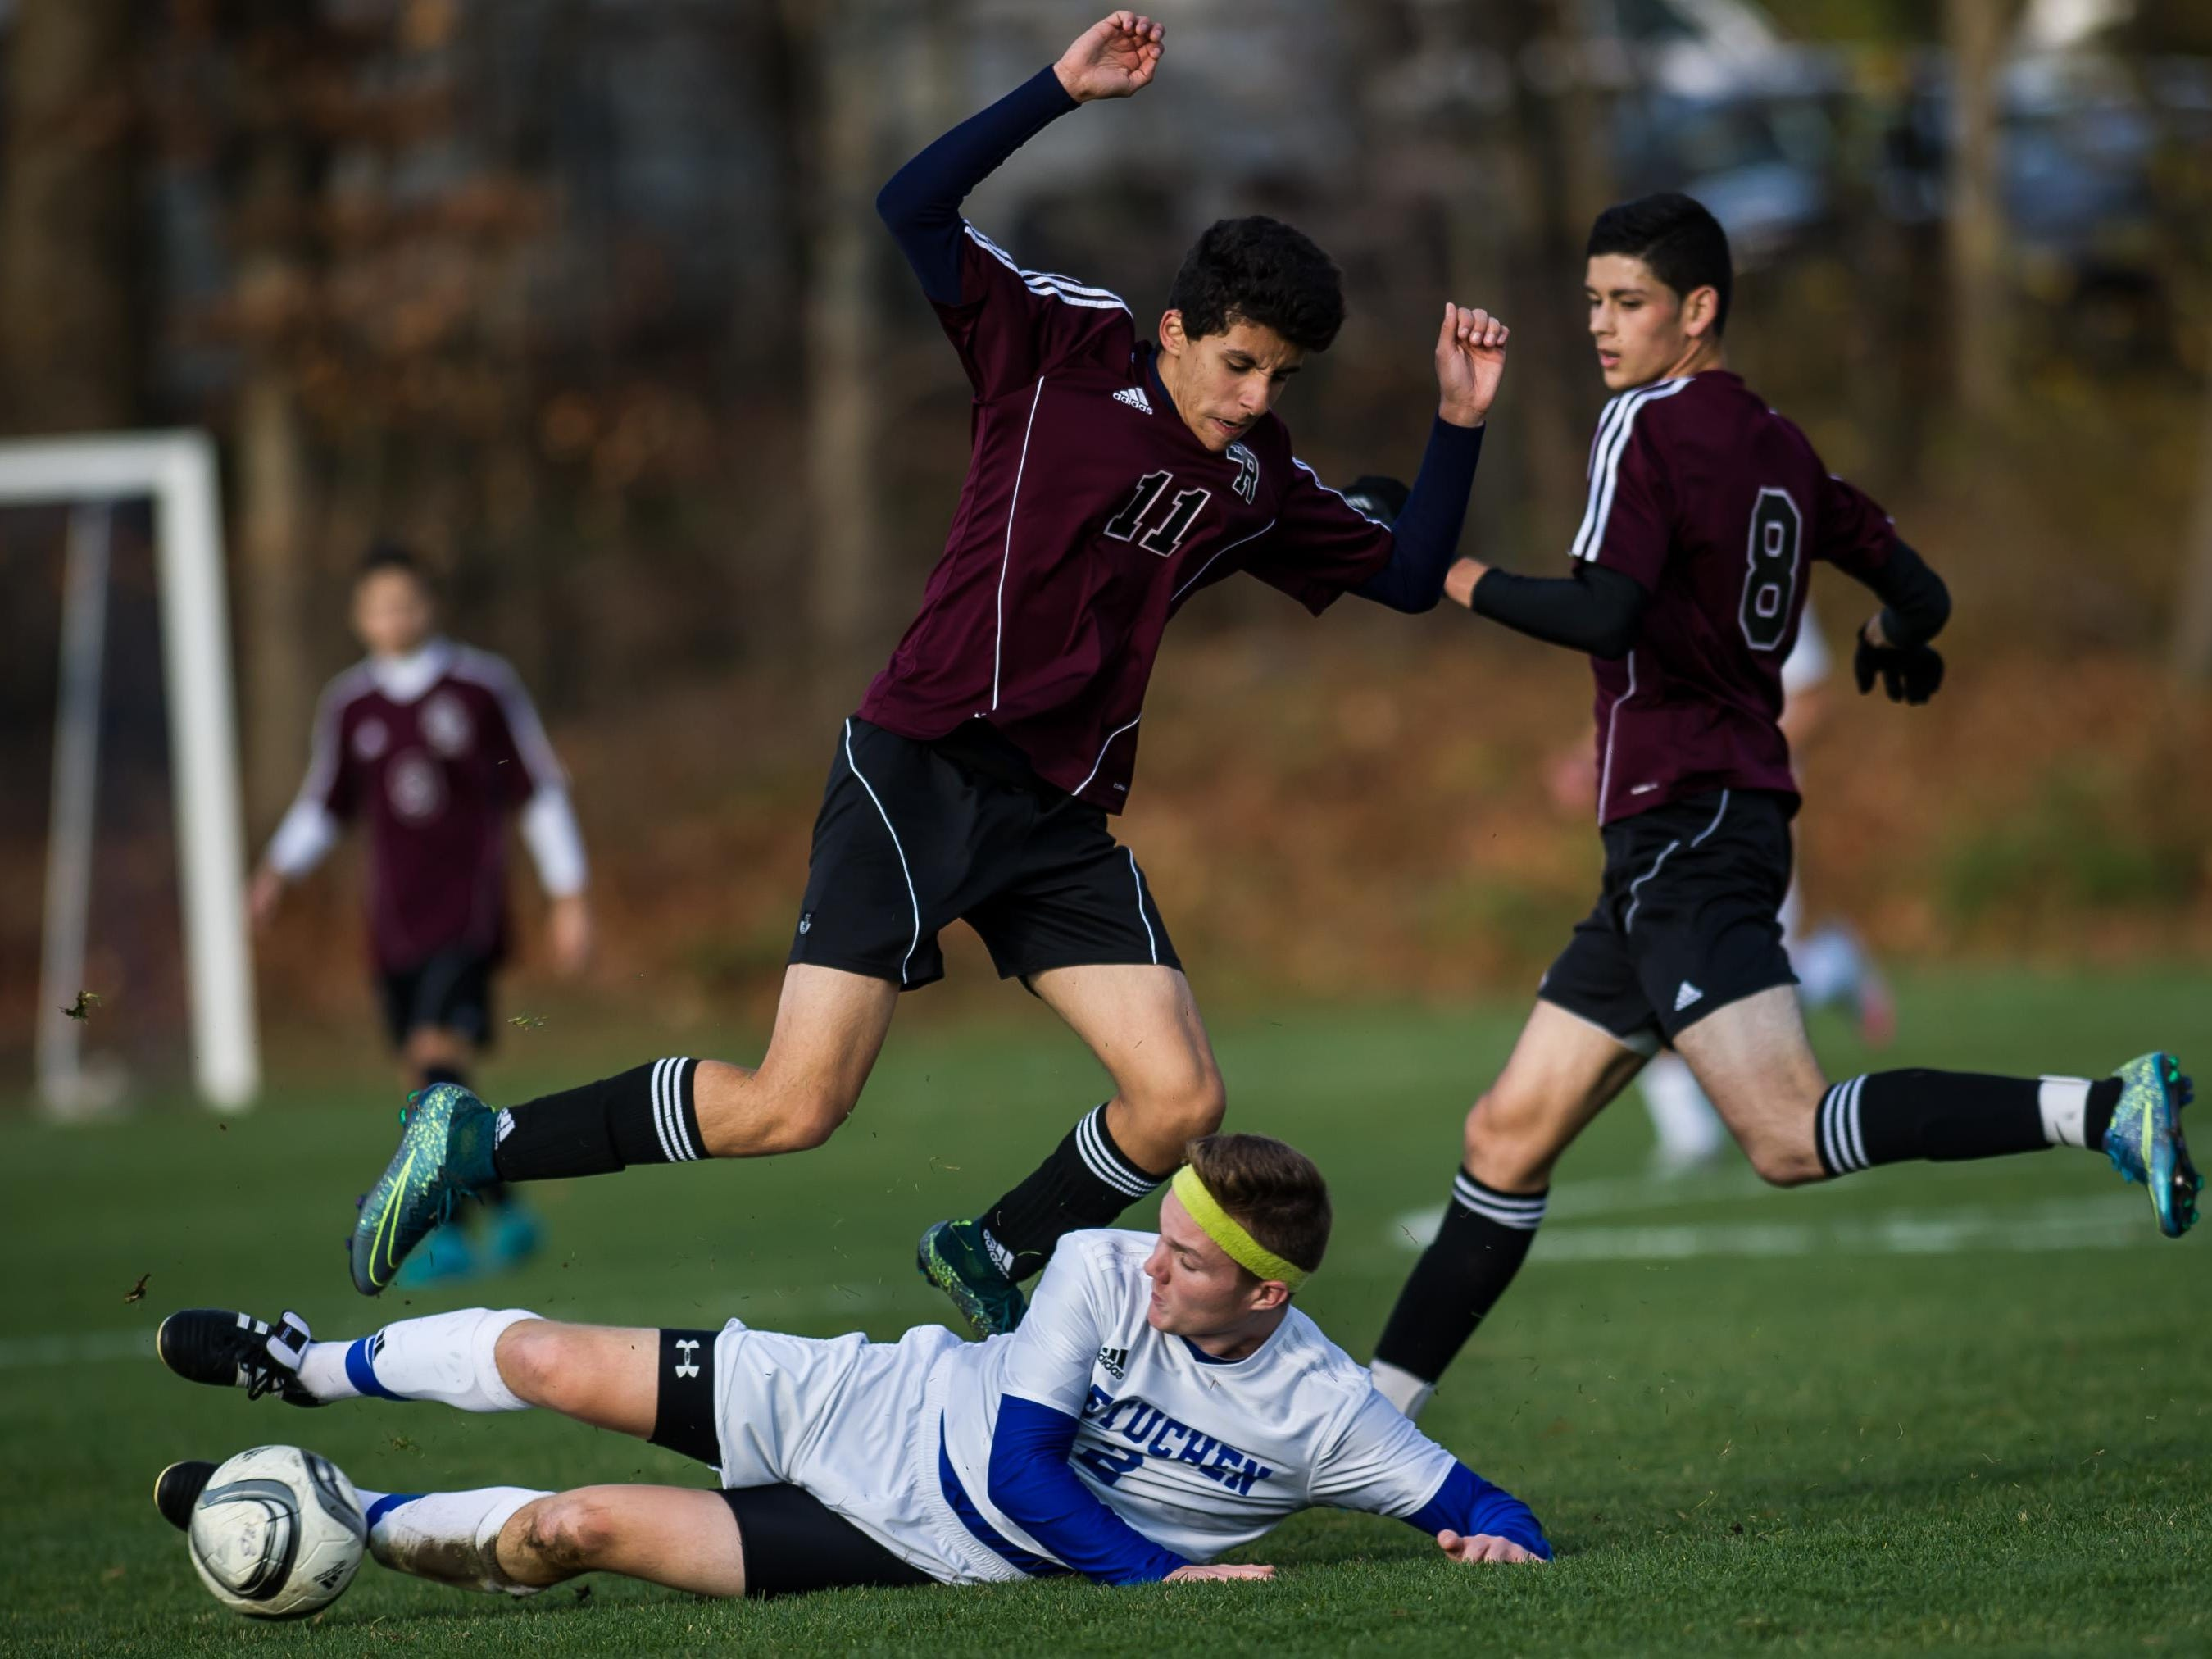 South River's Dennis Fernandes jumps over a sliding Mike Plunkett of Metuchen during their NJSIAA Central Group I sectional final on Friday at Metuchen High School.